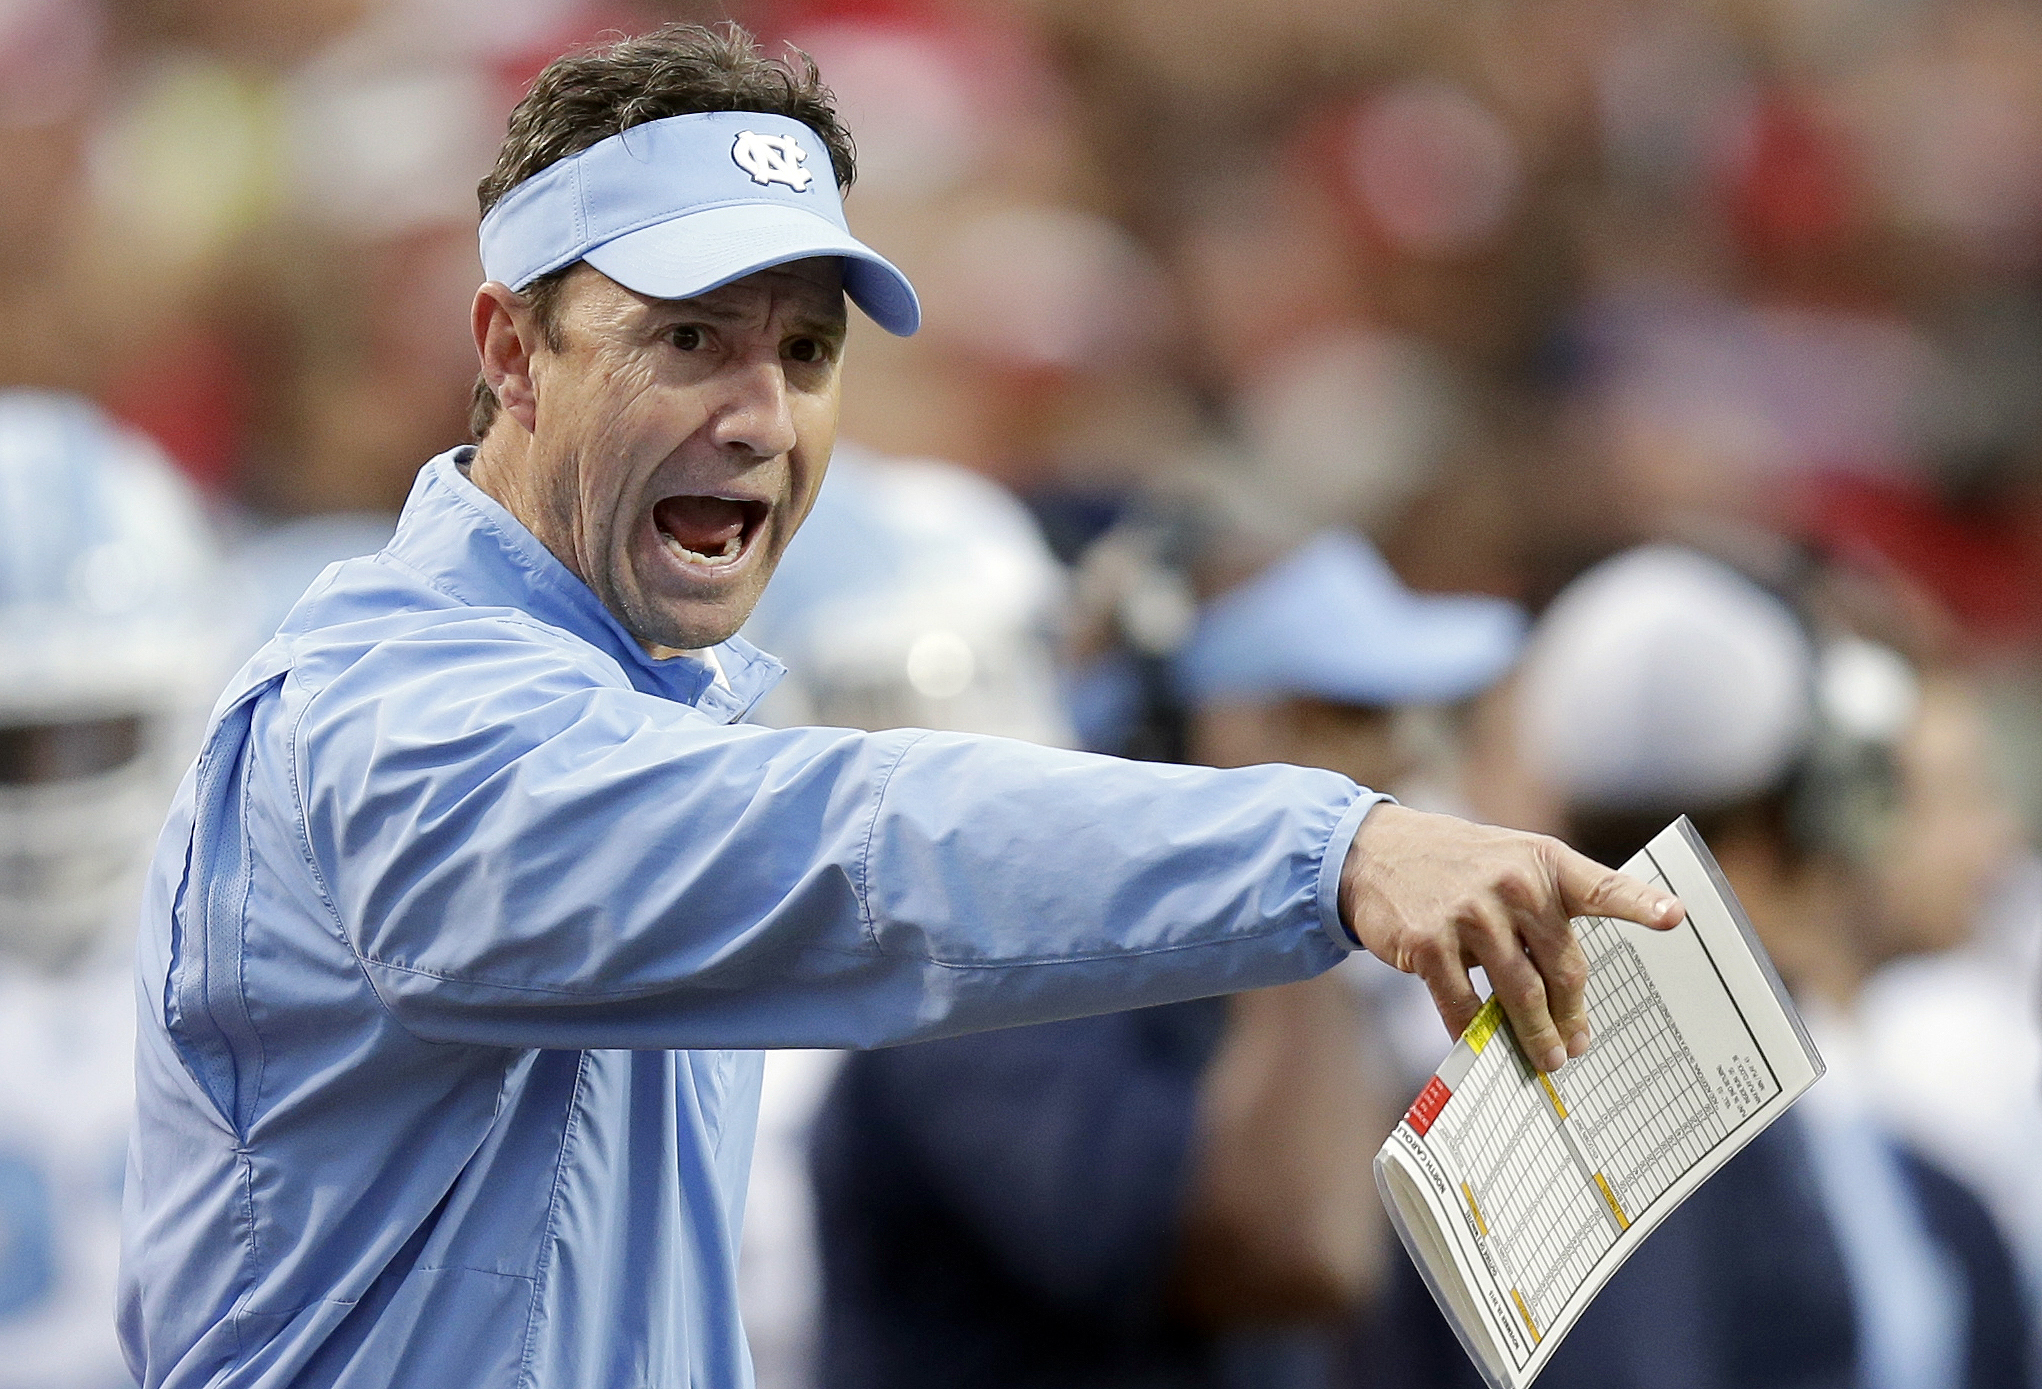 FILE - In this Nov. 28, 2015, file photo, North Carolina coach Larry Fedora yells at an official during the first half an NCAA college football game against North Carolina State in Raleigh, N.C. Fedora's team became the fifth different team in as many sea